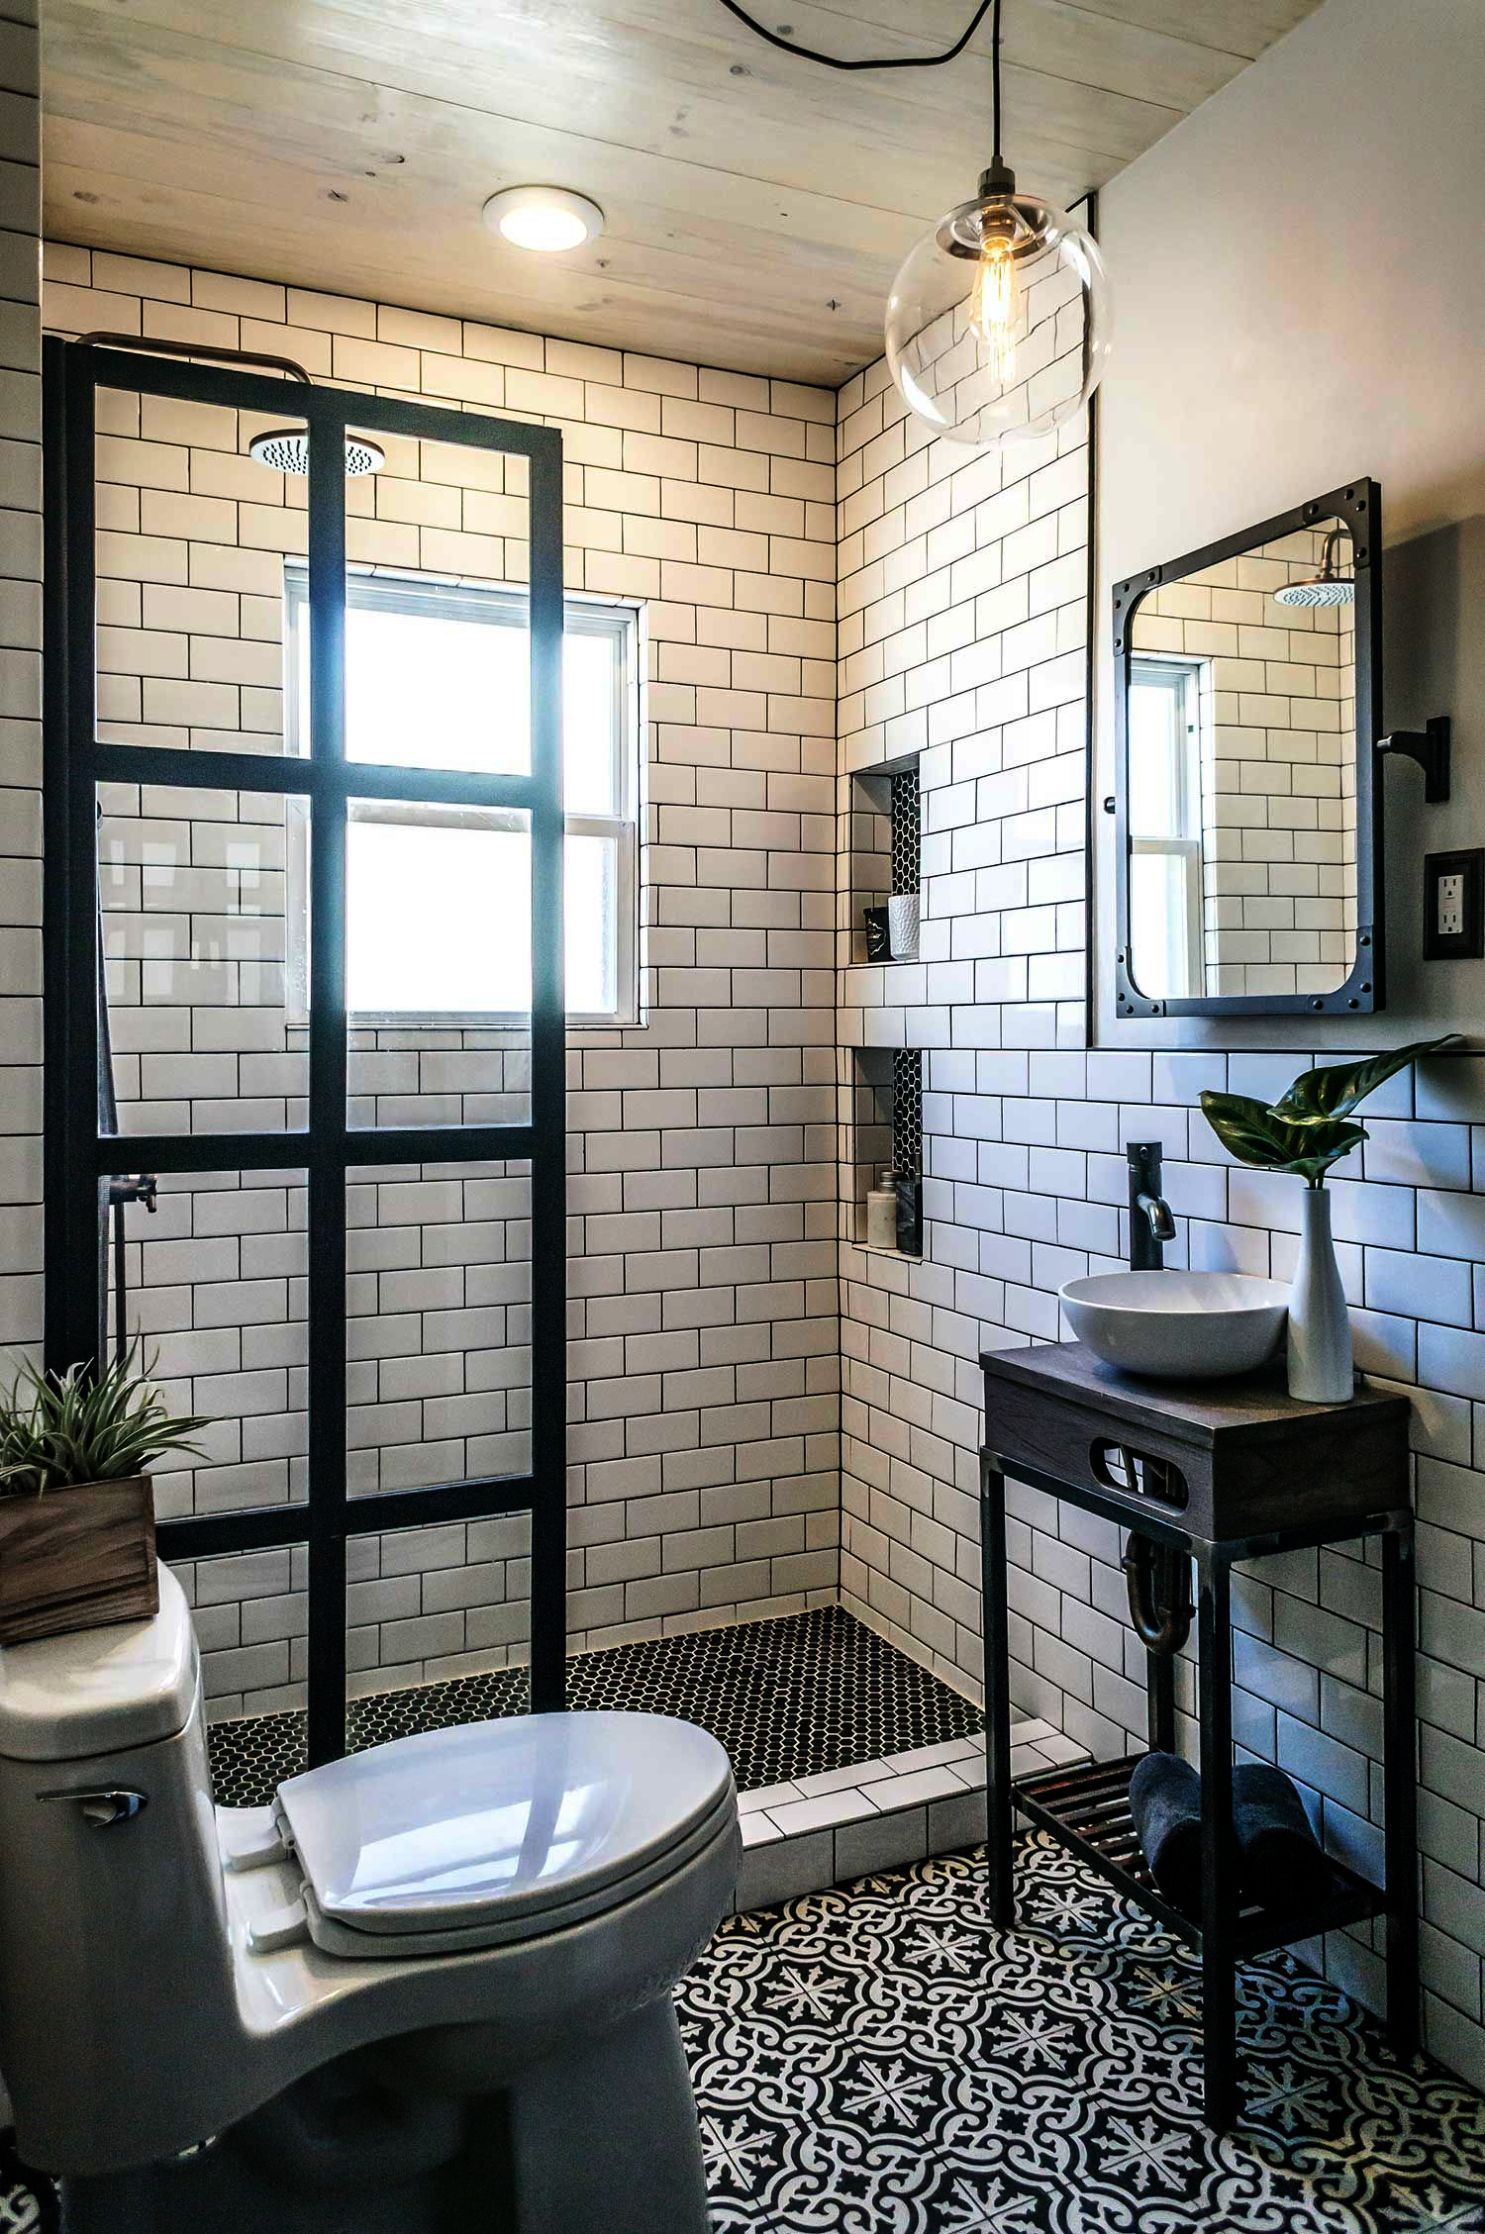 111 Awesome Small Bathroom Remodel Ideas On A Budget 5 Bathroom Remodel Shower Small Master Bathroom Master Bathroom Makeover